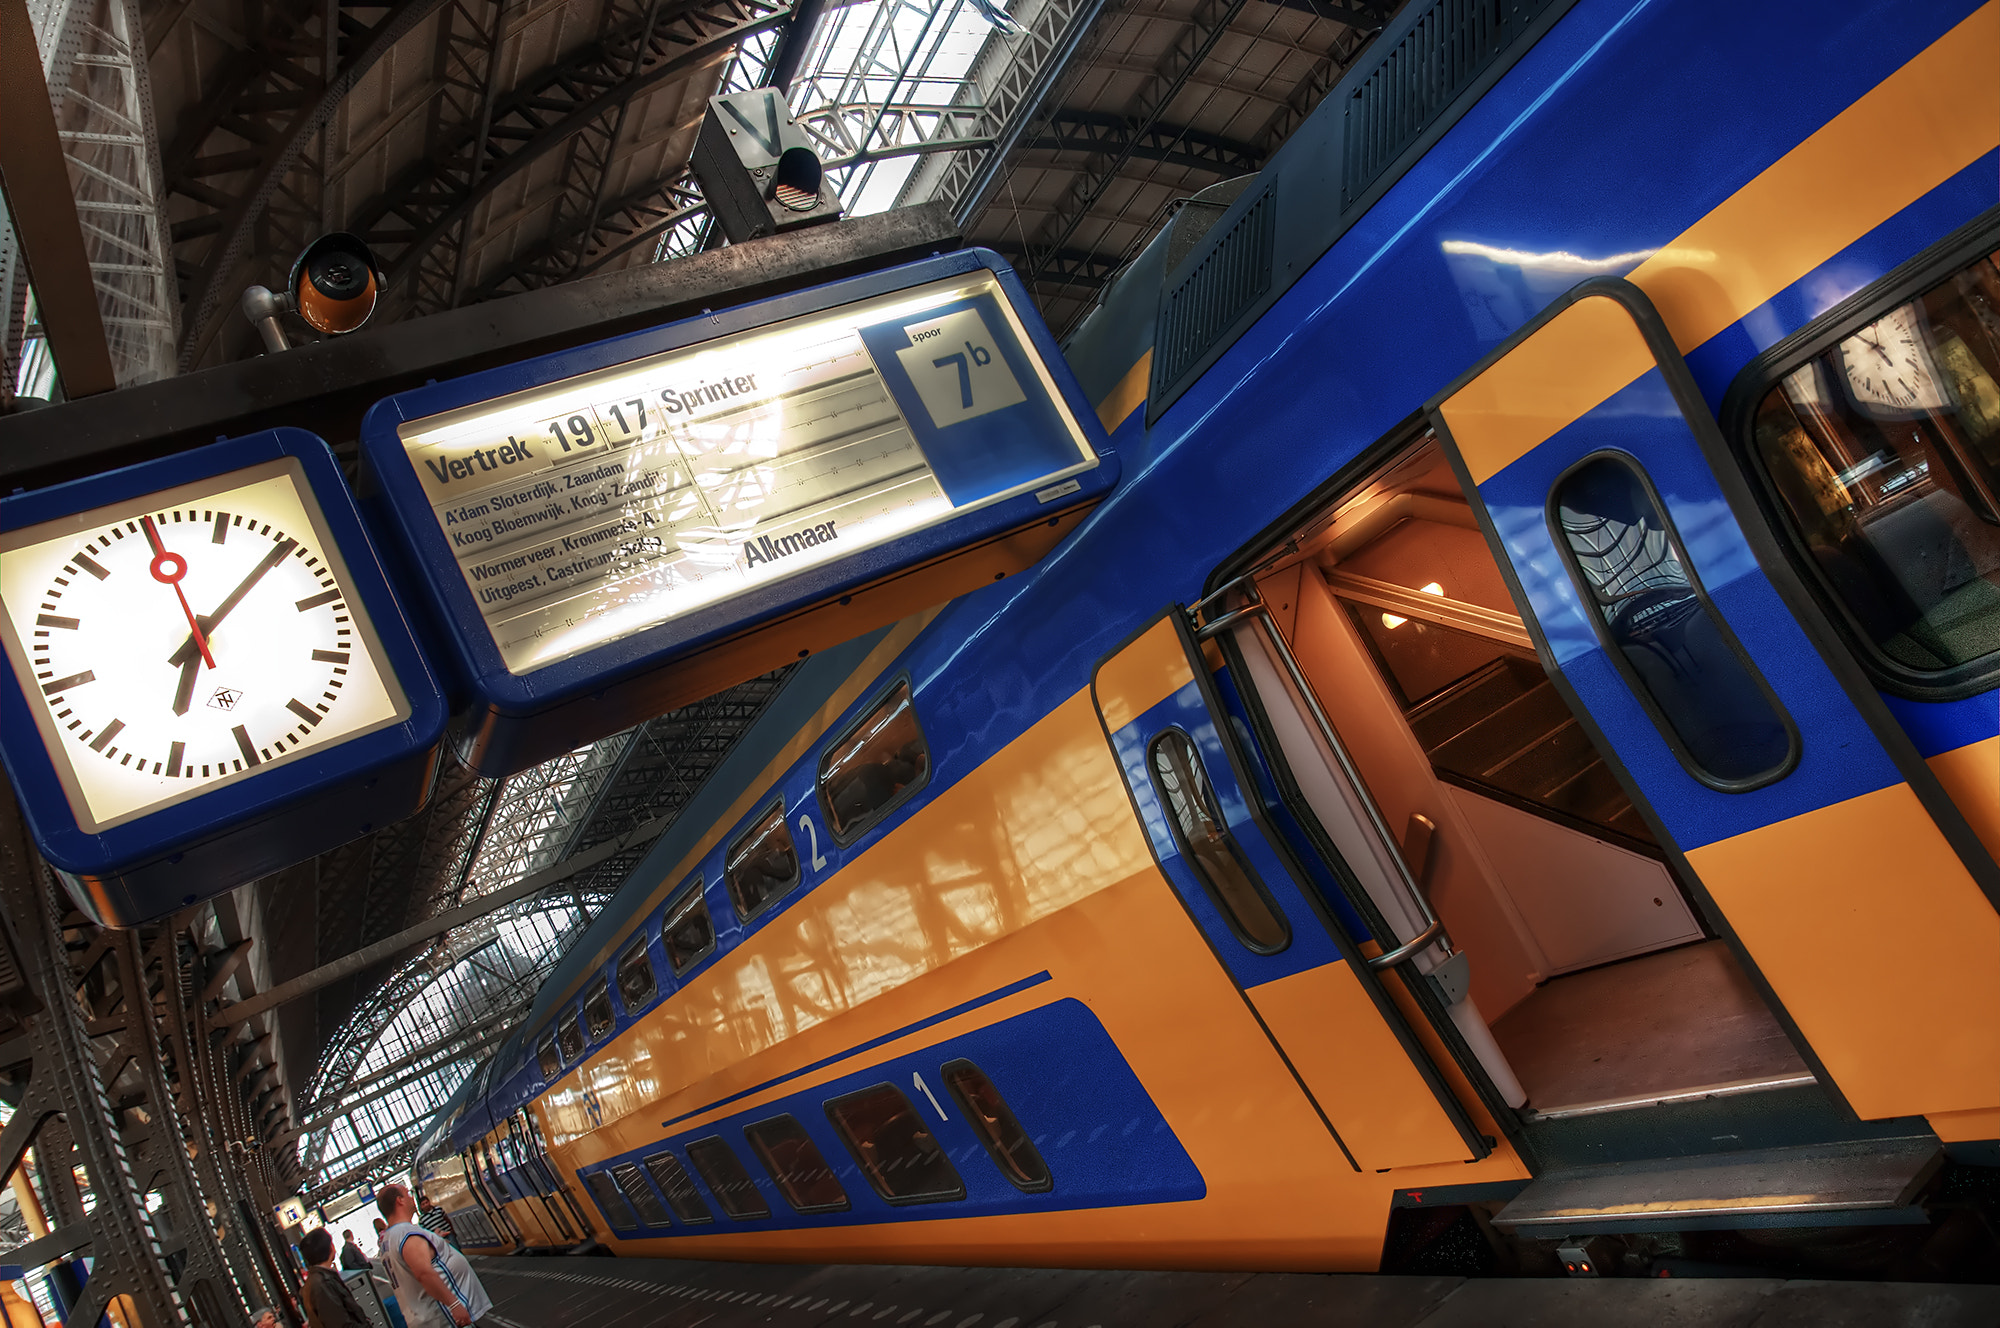 Photograph Amsterdam Centraal by Niels Boon on 500px